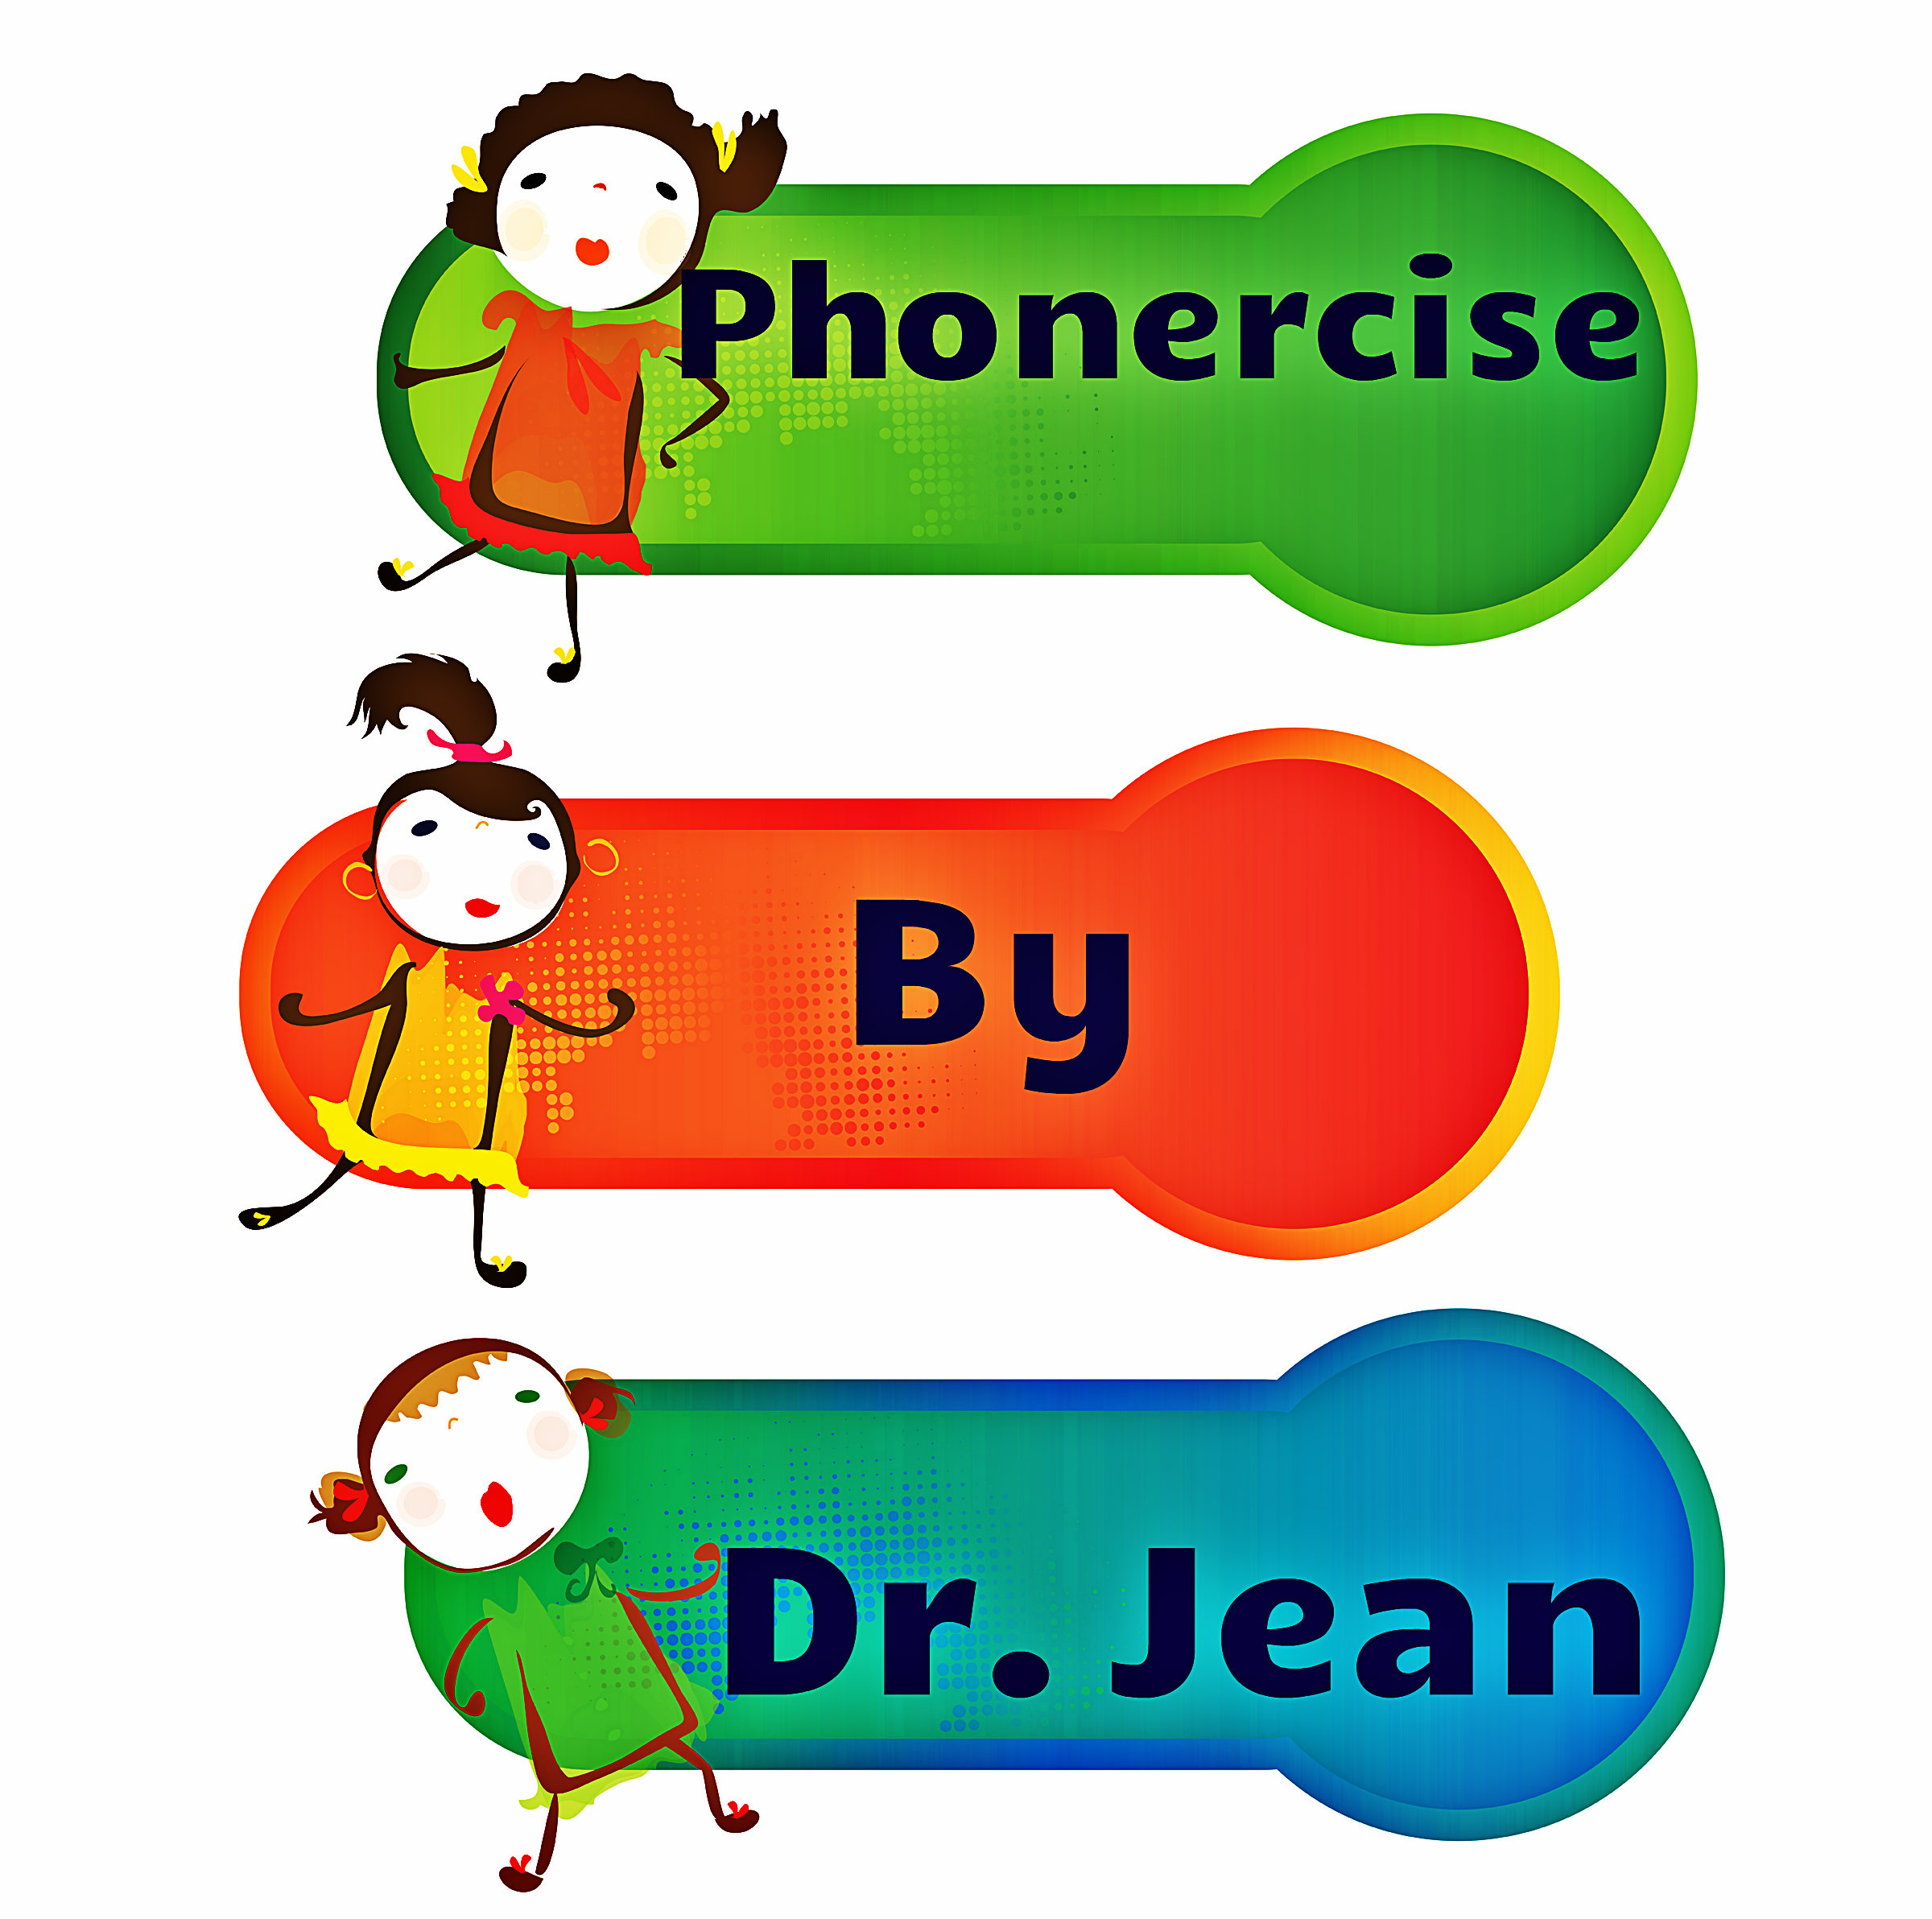 Phonercise: Learn phonics with movement.